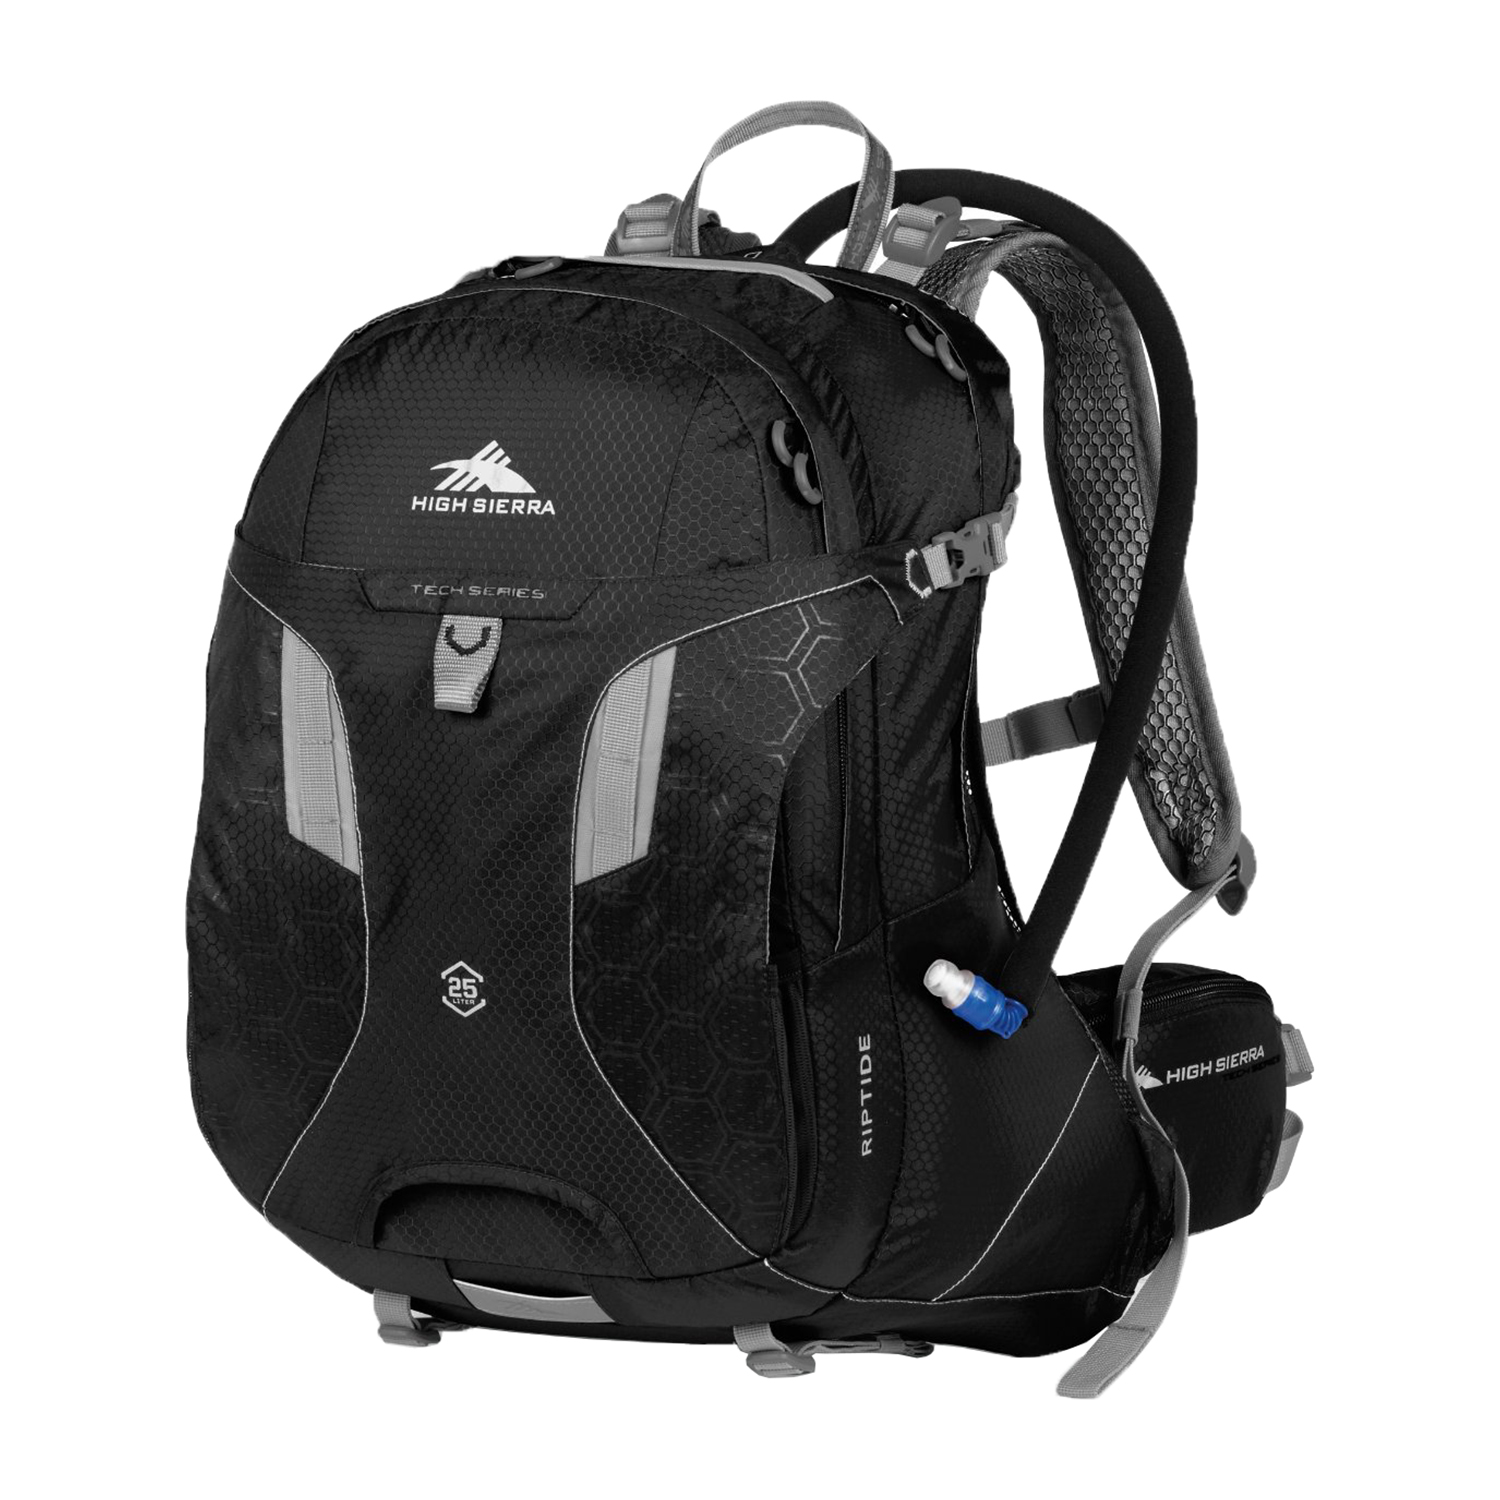 High Sierra Riptide BPA Free Airflow System 2 Liter Hydration Nylon Backpack by High Sierra